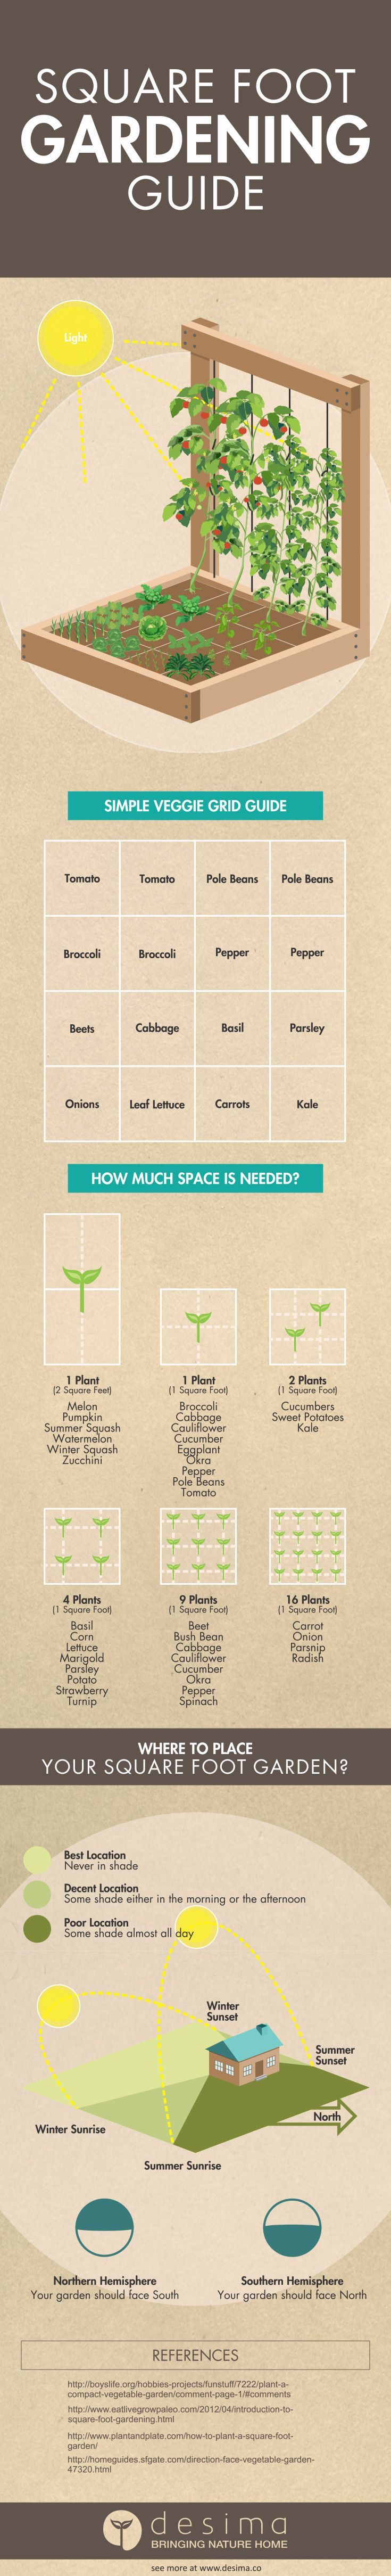 Square foot gardening guide infographic | Desima